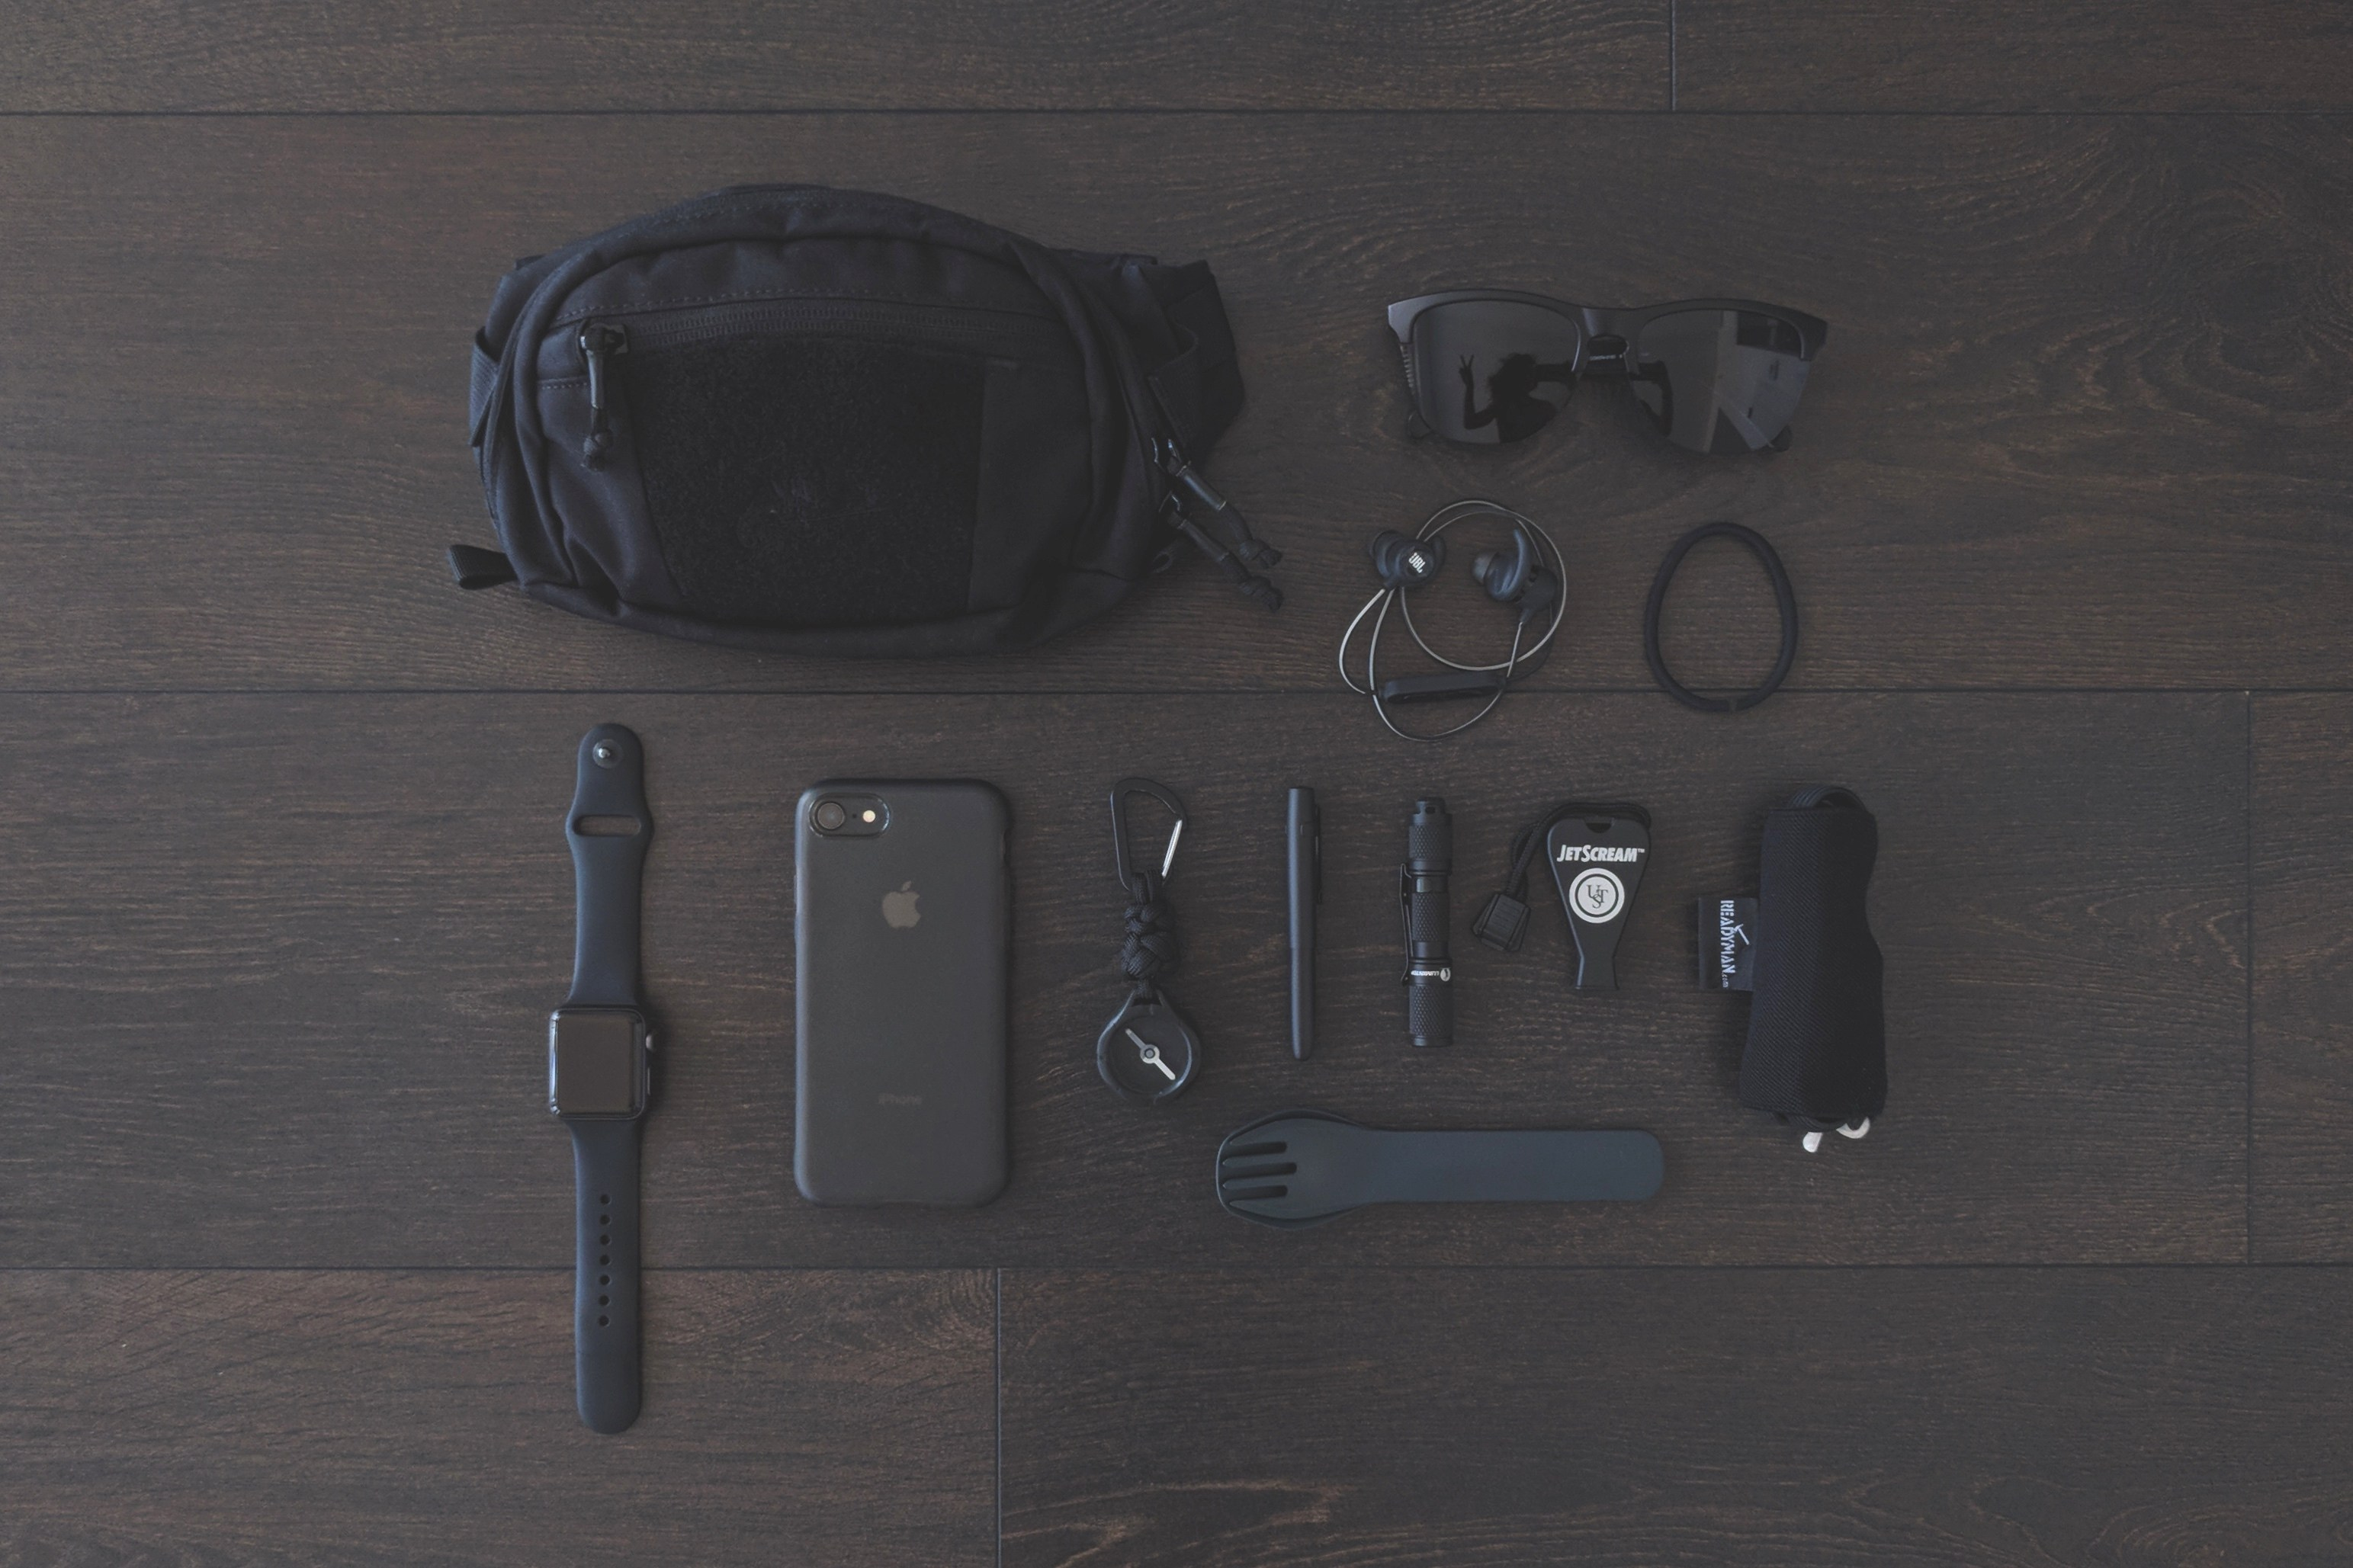 The essential components